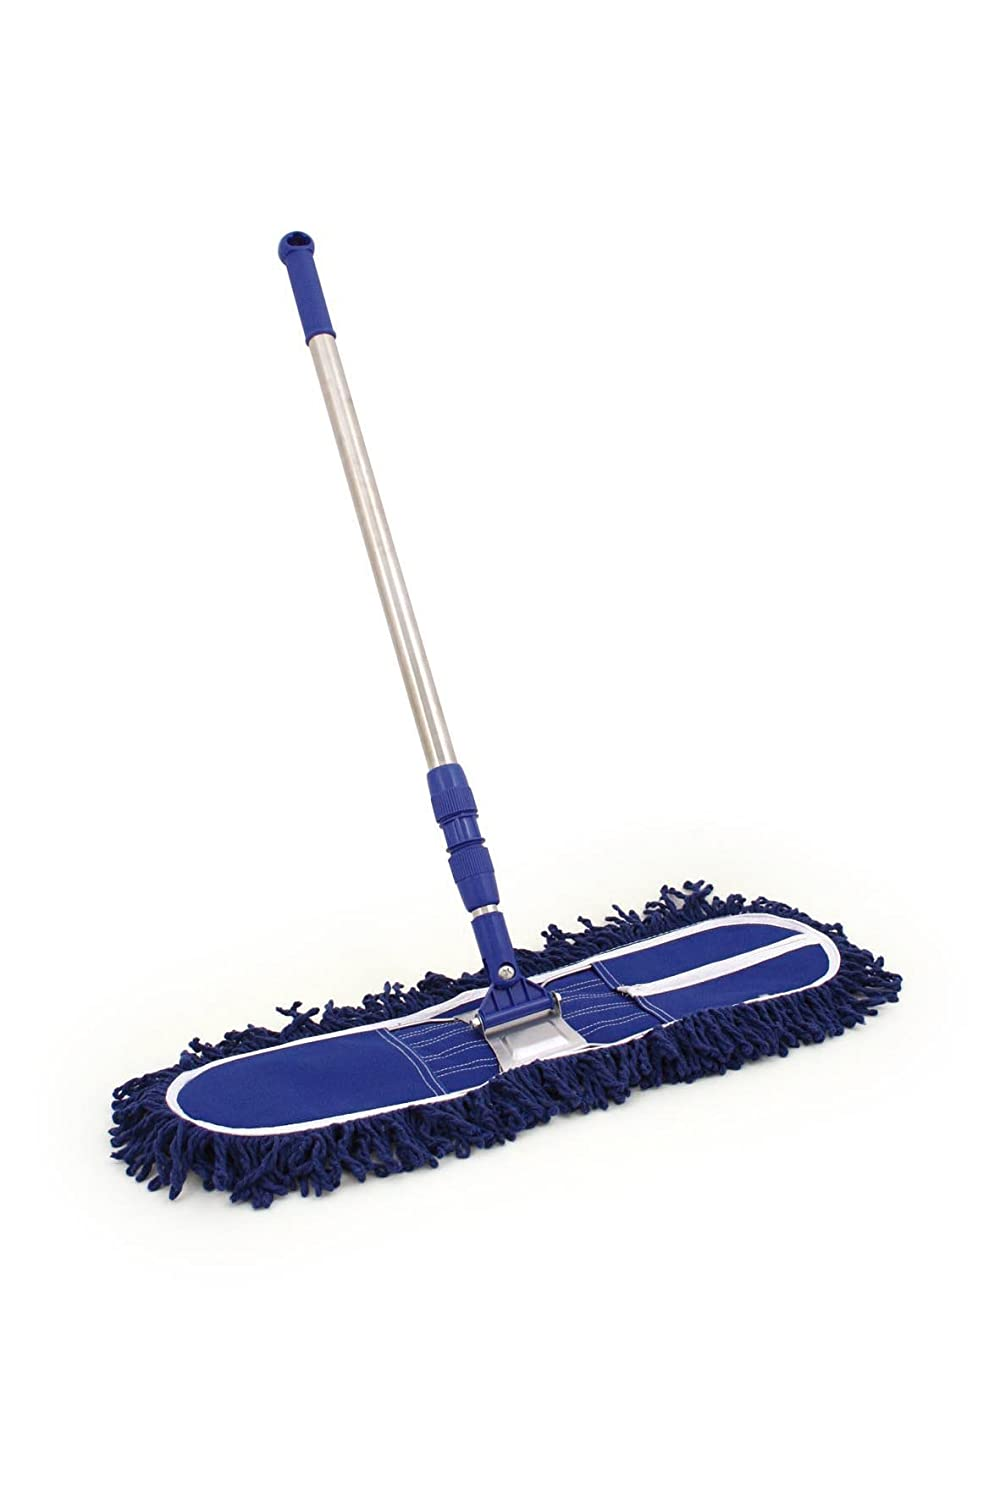 mop cleaning for how to wooden on mops clean emp floor tips vinyl we thought cleaner morespoons steam miracle method floors the not